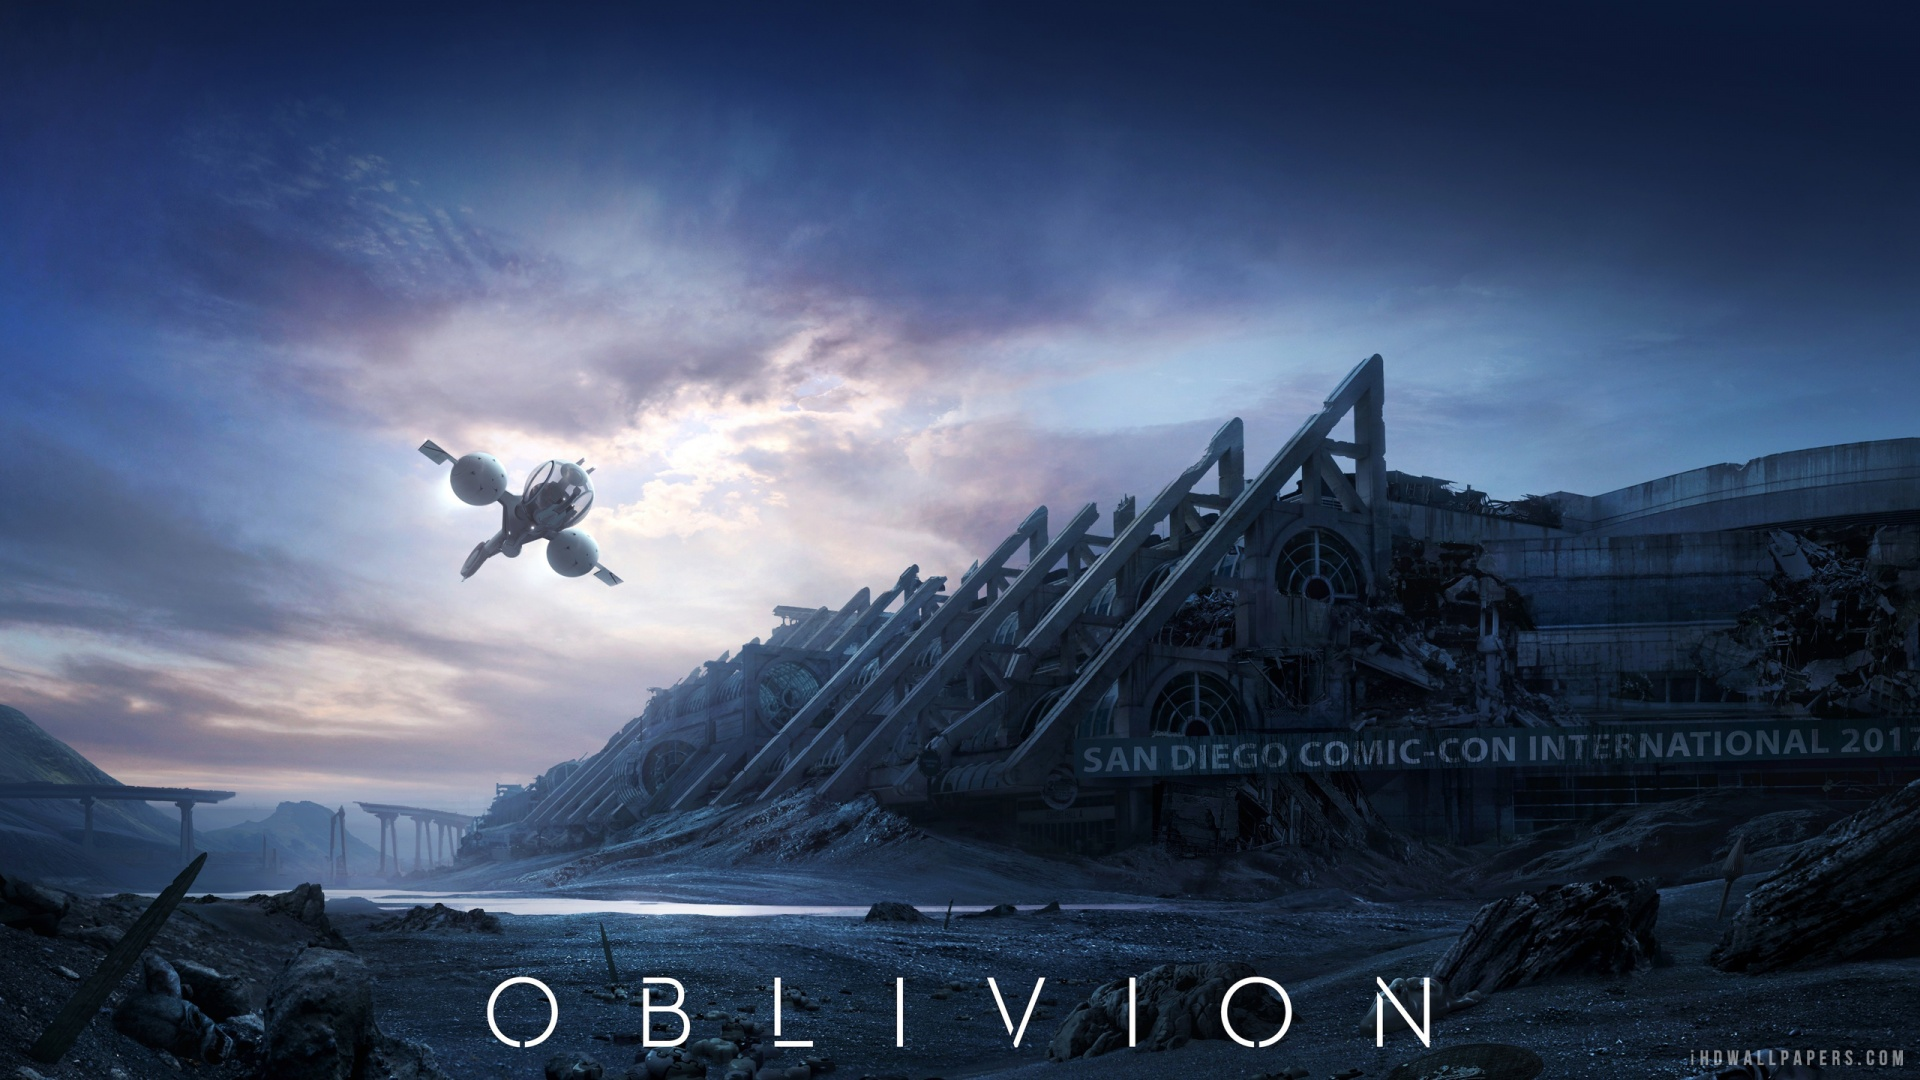 Oblivion 2013 Movie 4k Hd Desktop Wallpaper For 4k Ultra: Sci Fi Movie Wallpaper